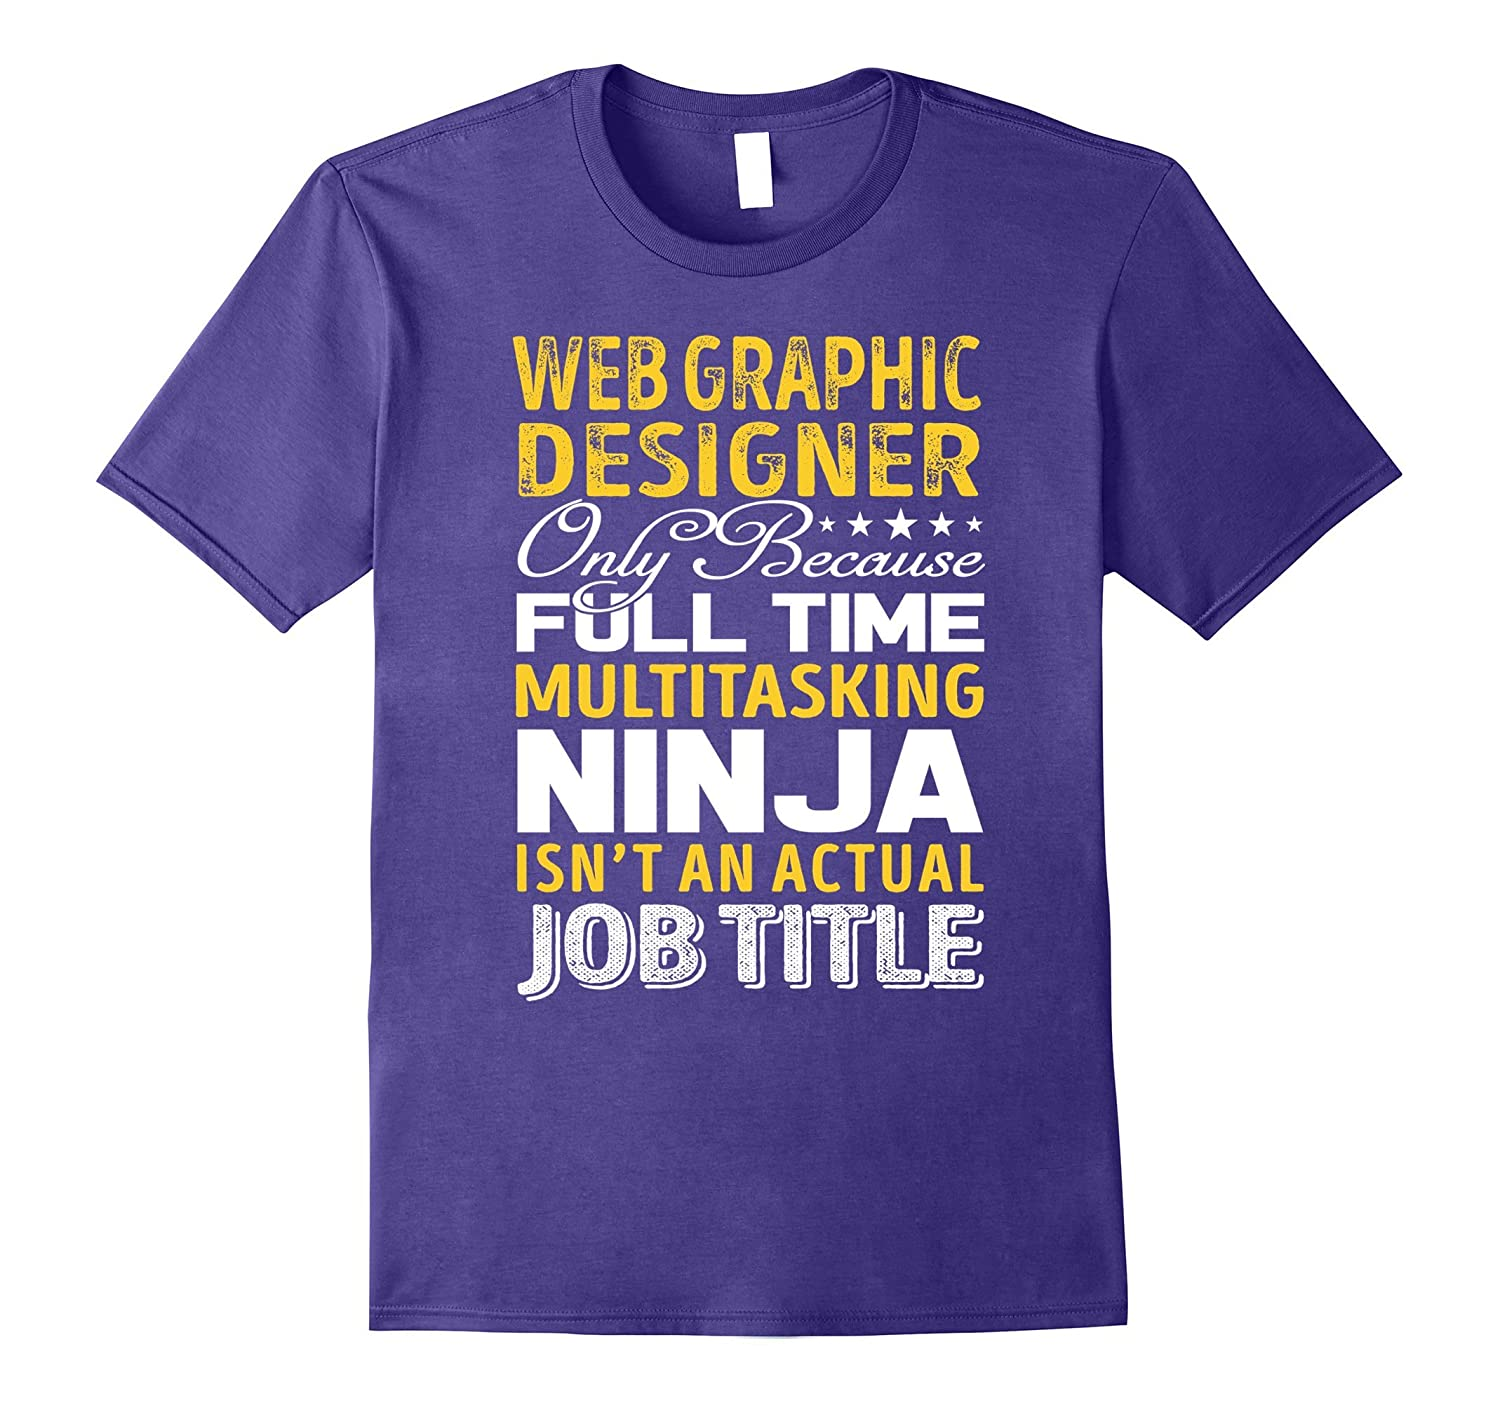 Web Graphic Designer Is Not An Actual Job Title TShirt-TJ